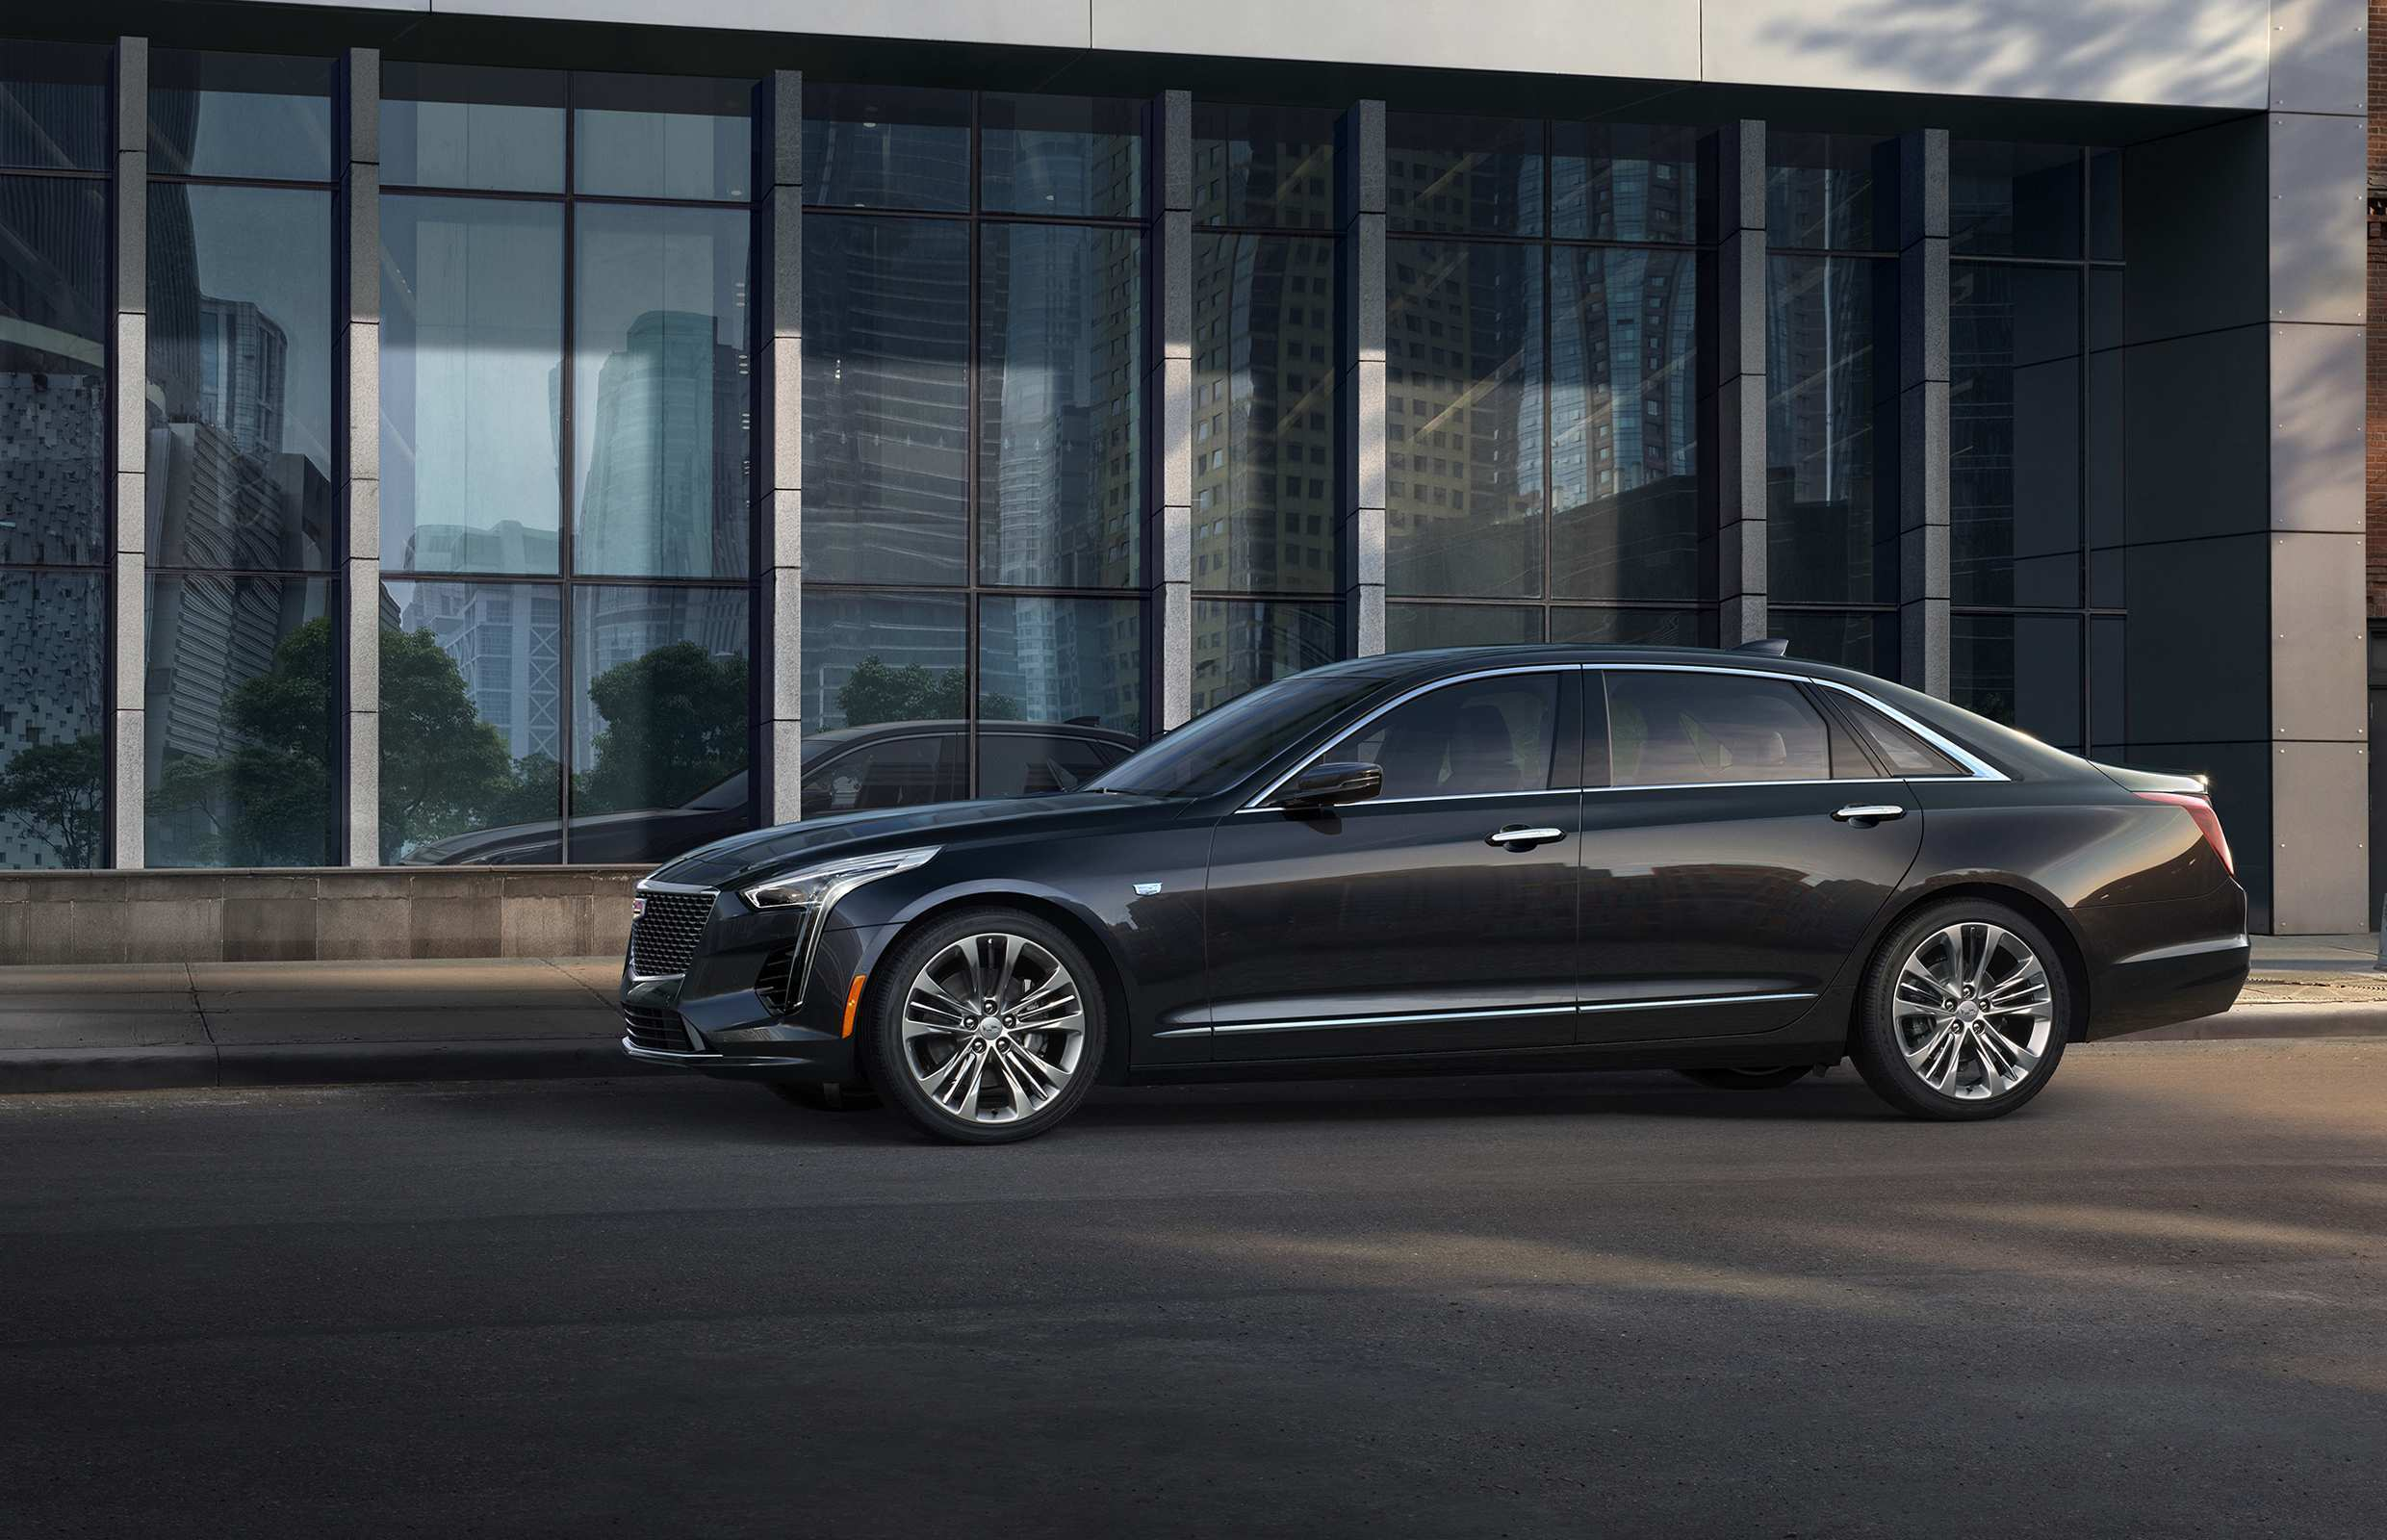 64 New 2019 Cadillac News Price And Release Date